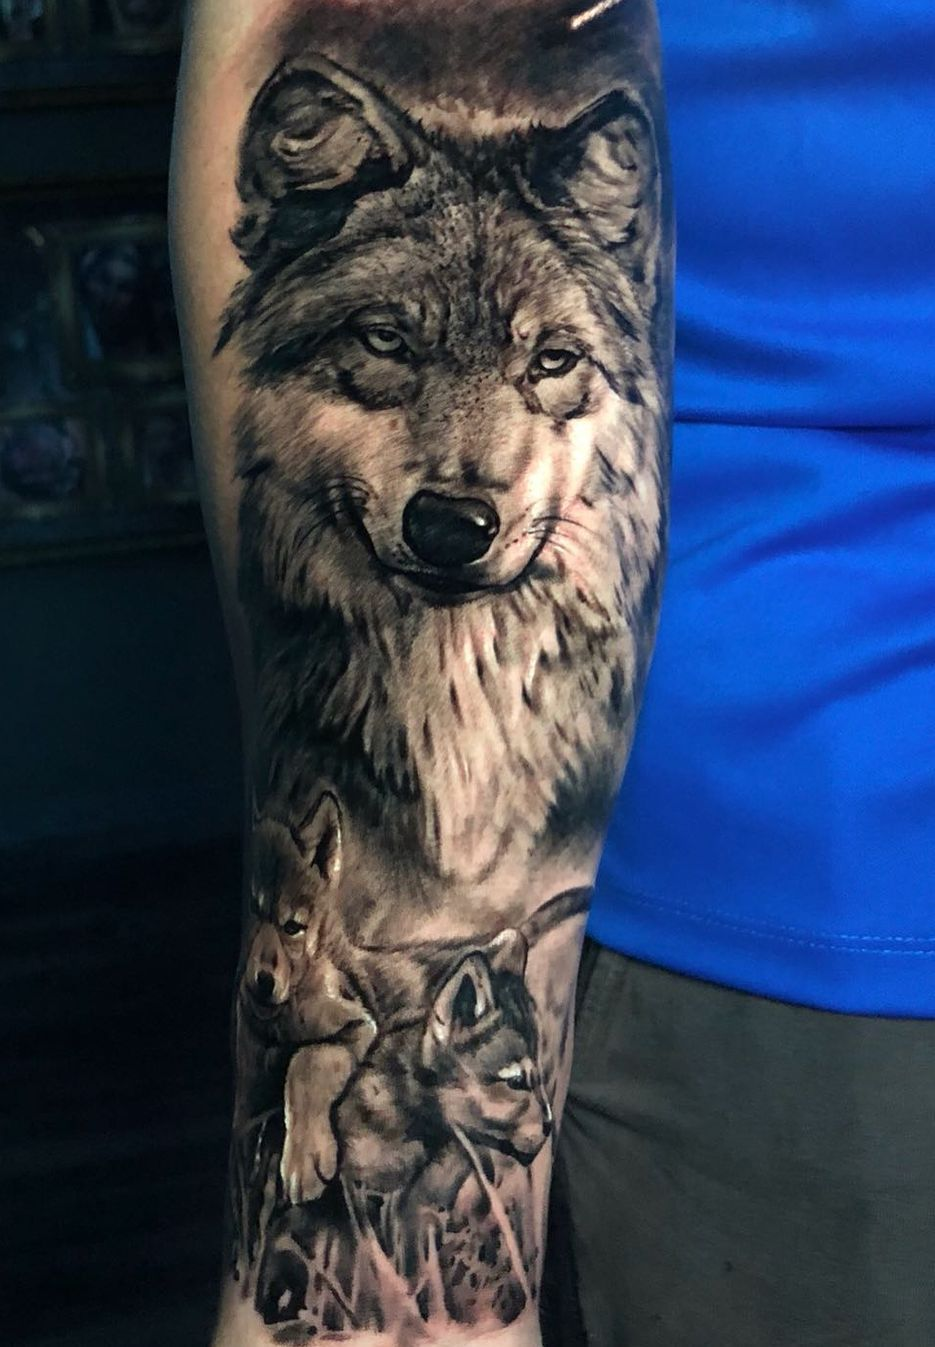 50 Of The Most Beautiful Wolf Tattoo Designs The Internet Has Ever Seen Awesome Black Gray Wolf Tattoo In 2020 Wolf Tattoo Sleeve Wolf Tattoo Design Wolf Tattoos